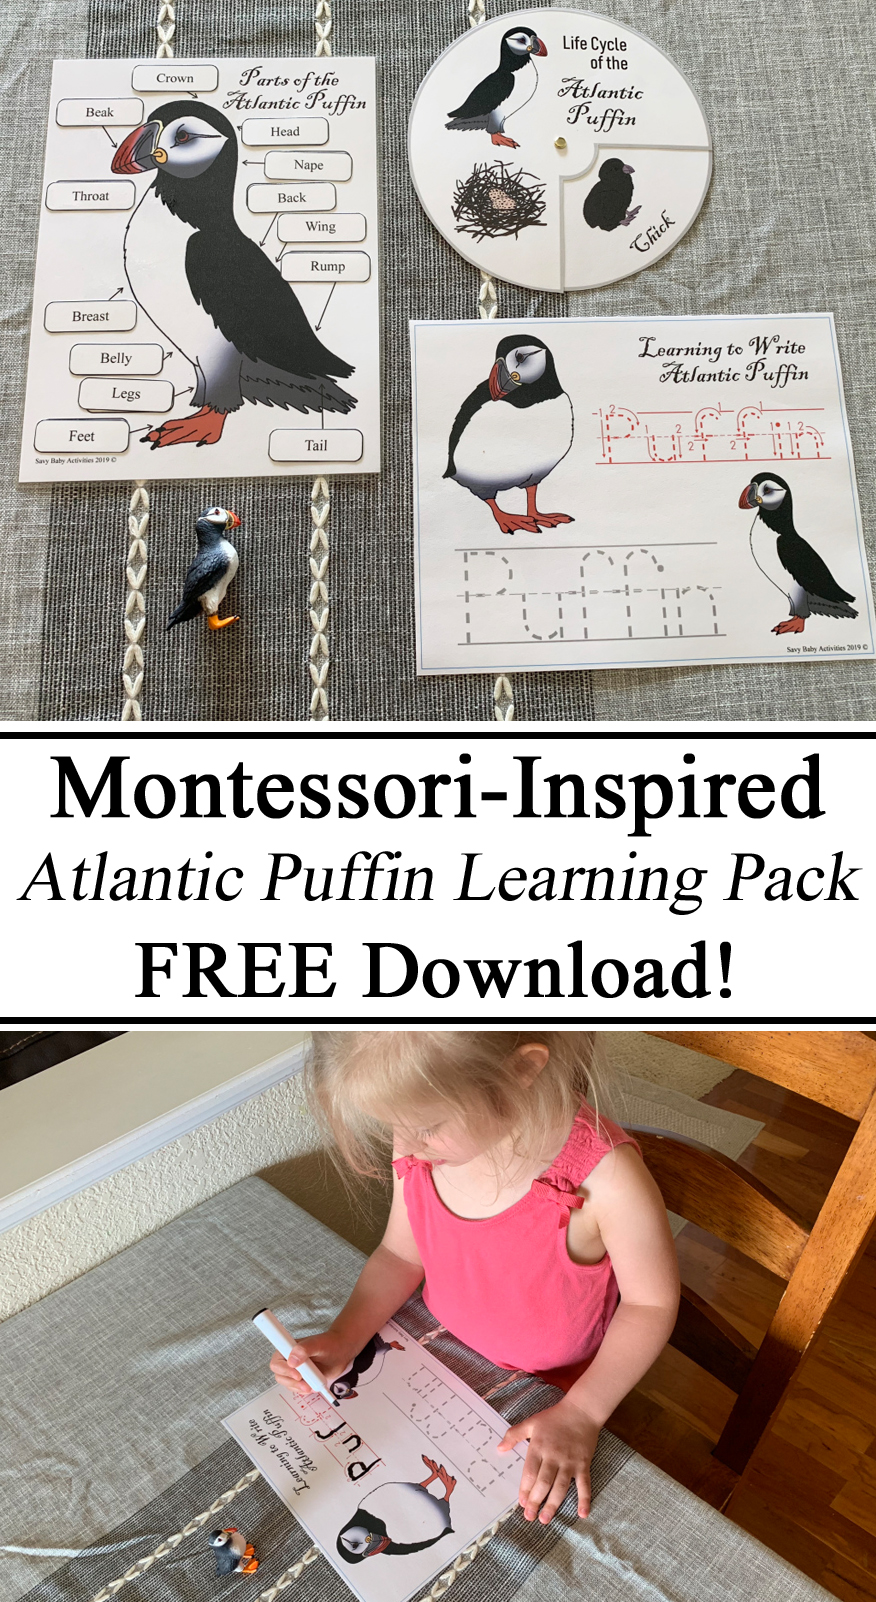 Montessori Inspired Ideas Waldorf Nature Schooling Kids Hands on Learning Life Cycle Matching Parts Learn to Write Spinner Preschool FREE Printables Download Resources PreK Kindergarten Early Childhood Education Learn Summer TPT Teachers Pay Teachers